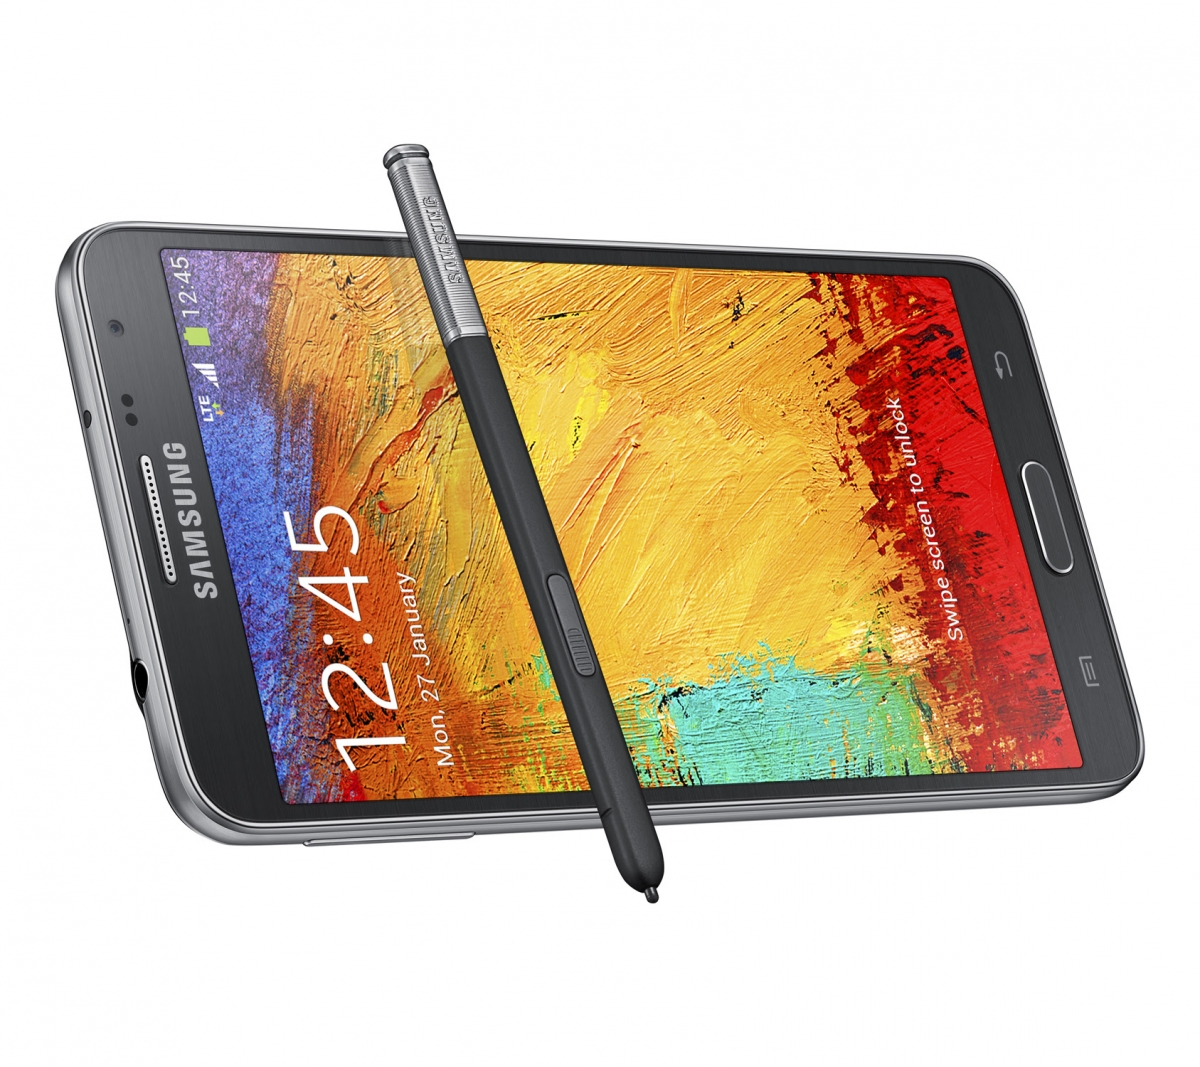 Samsung Unveils Galaxy Note 3 Neo, Debuts First Hexa-Core Exynos Processor